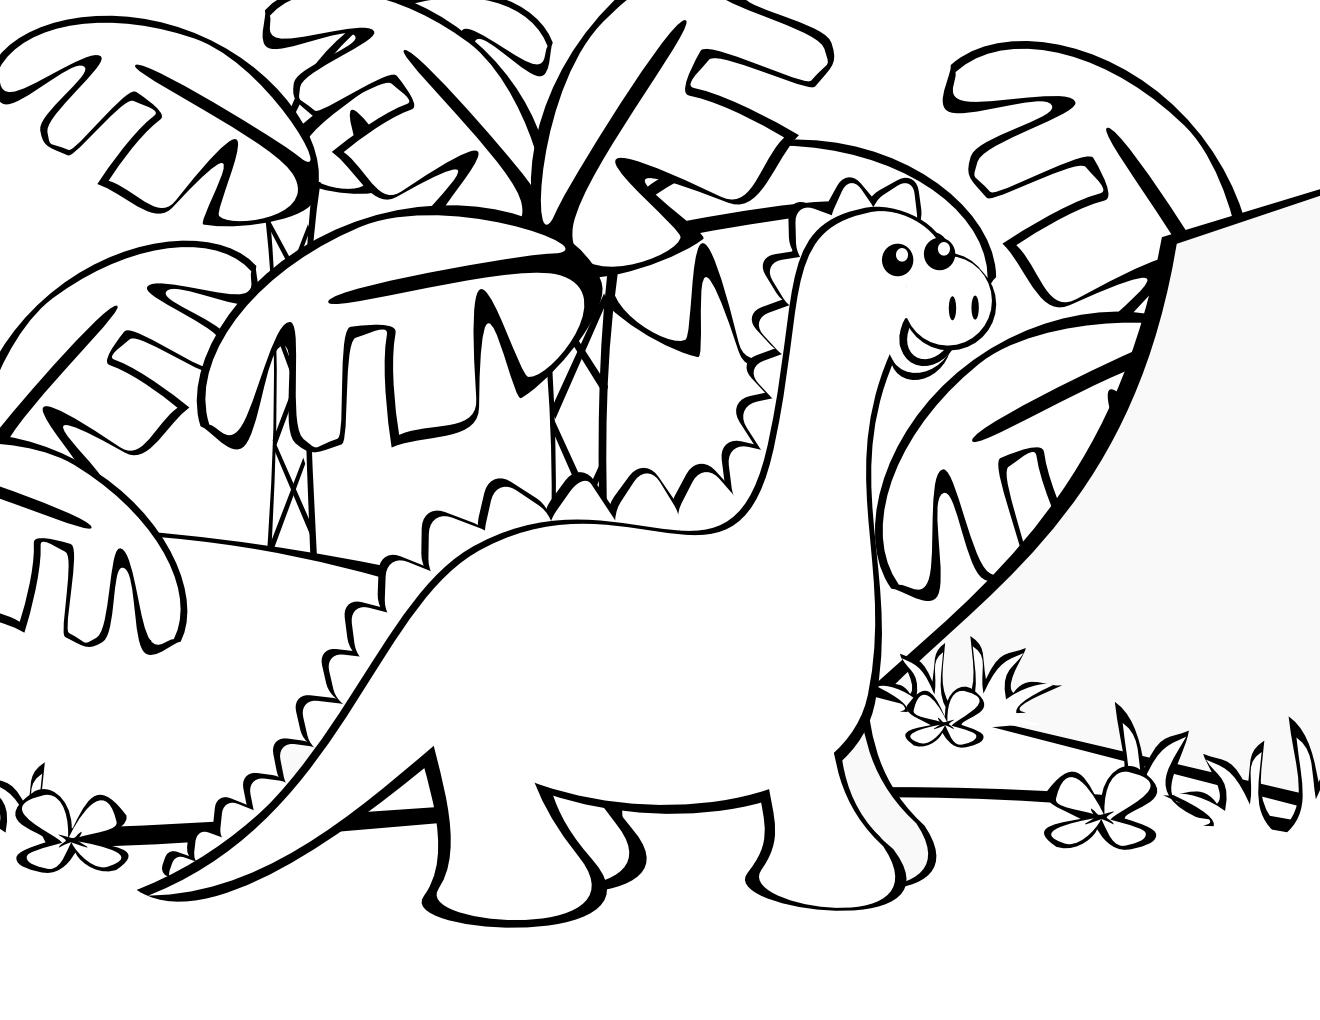 dino coloring page t rex dinosaur coloring pages at getcoloringscom free coloring page dino